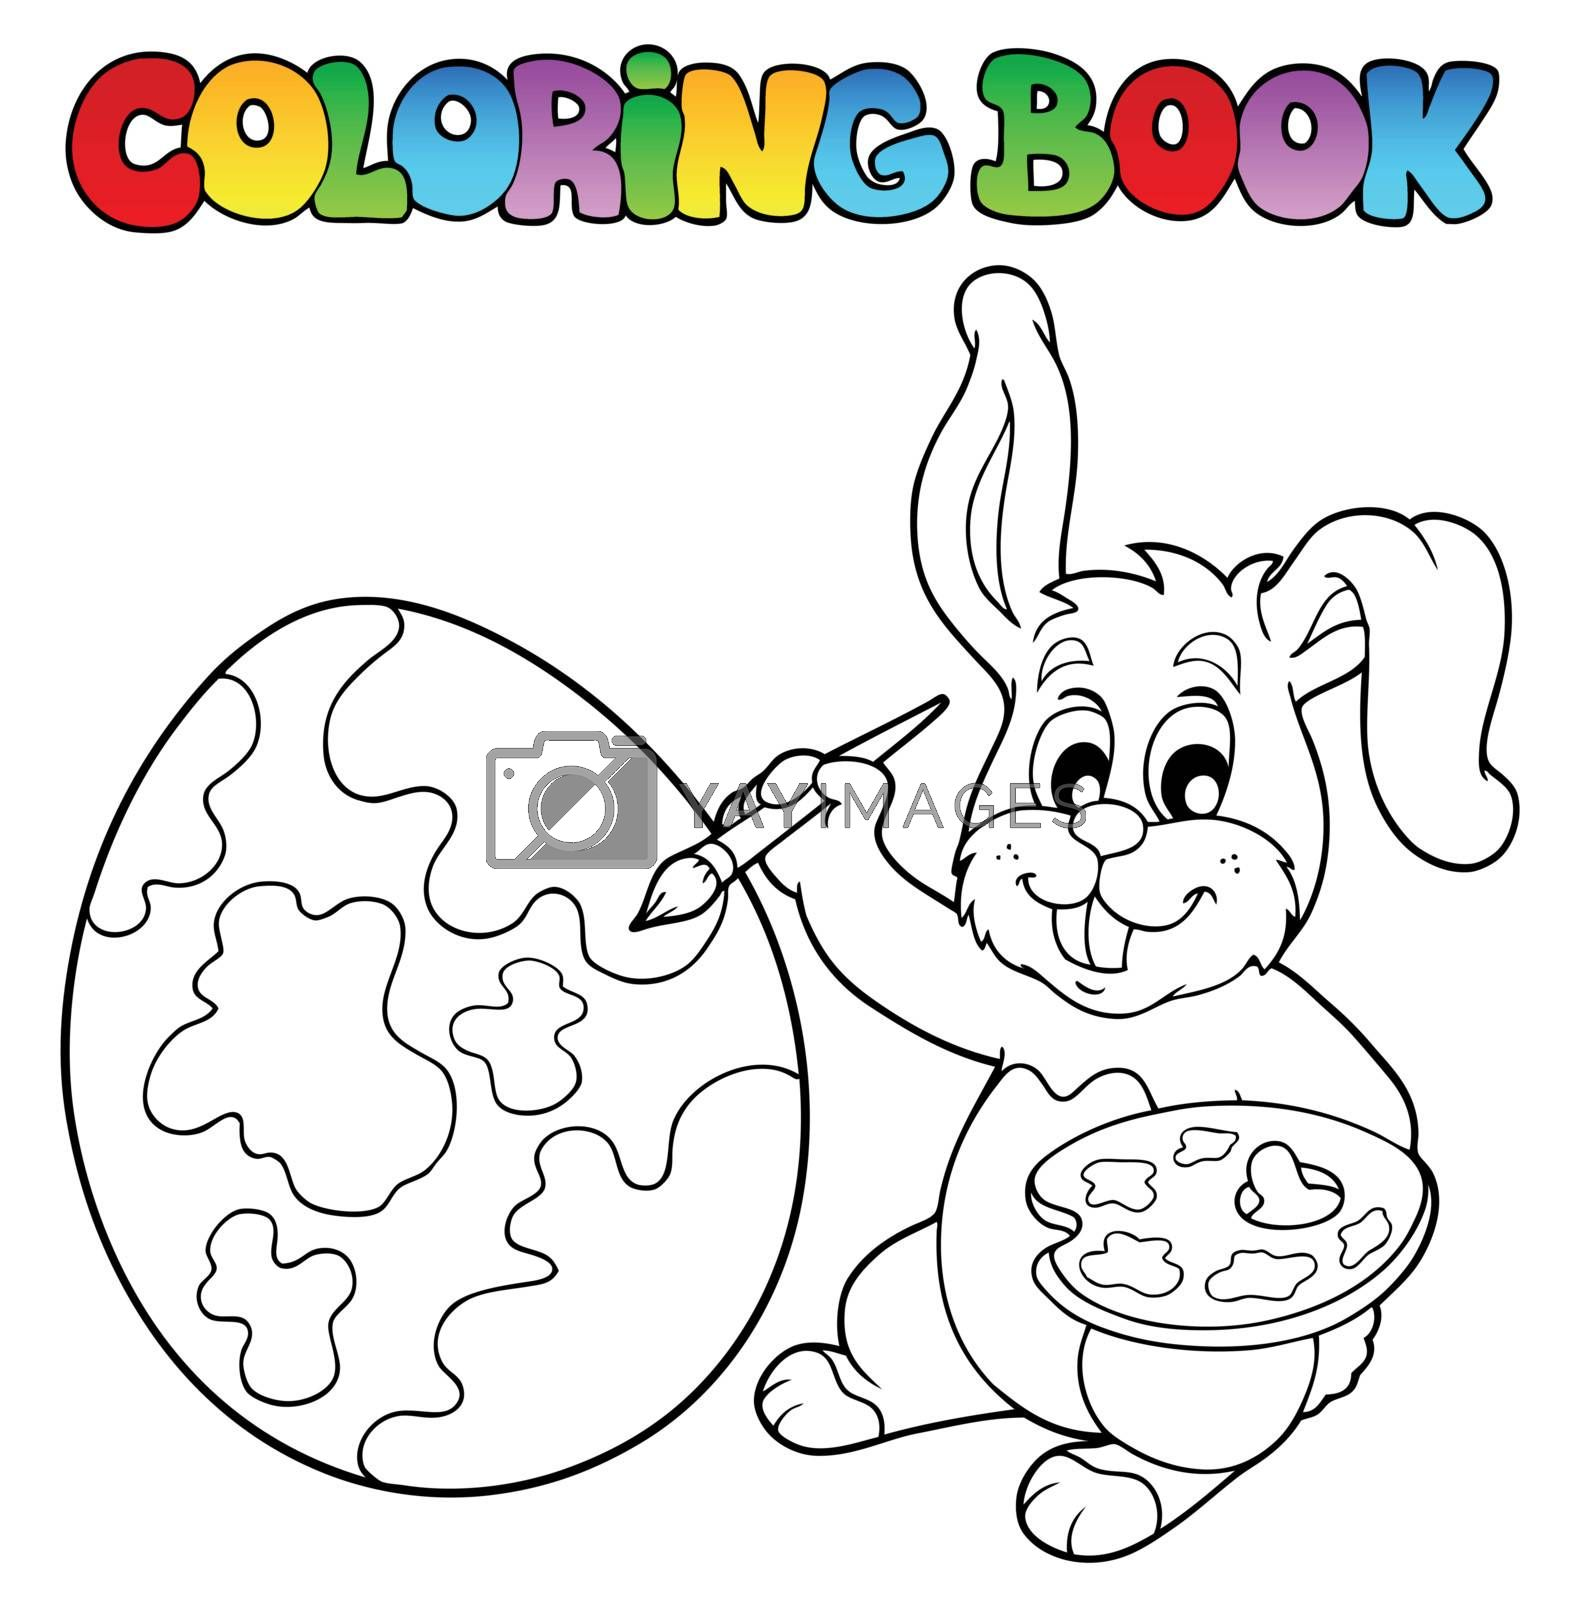 Coloring book with bunny artist - vector illustration.